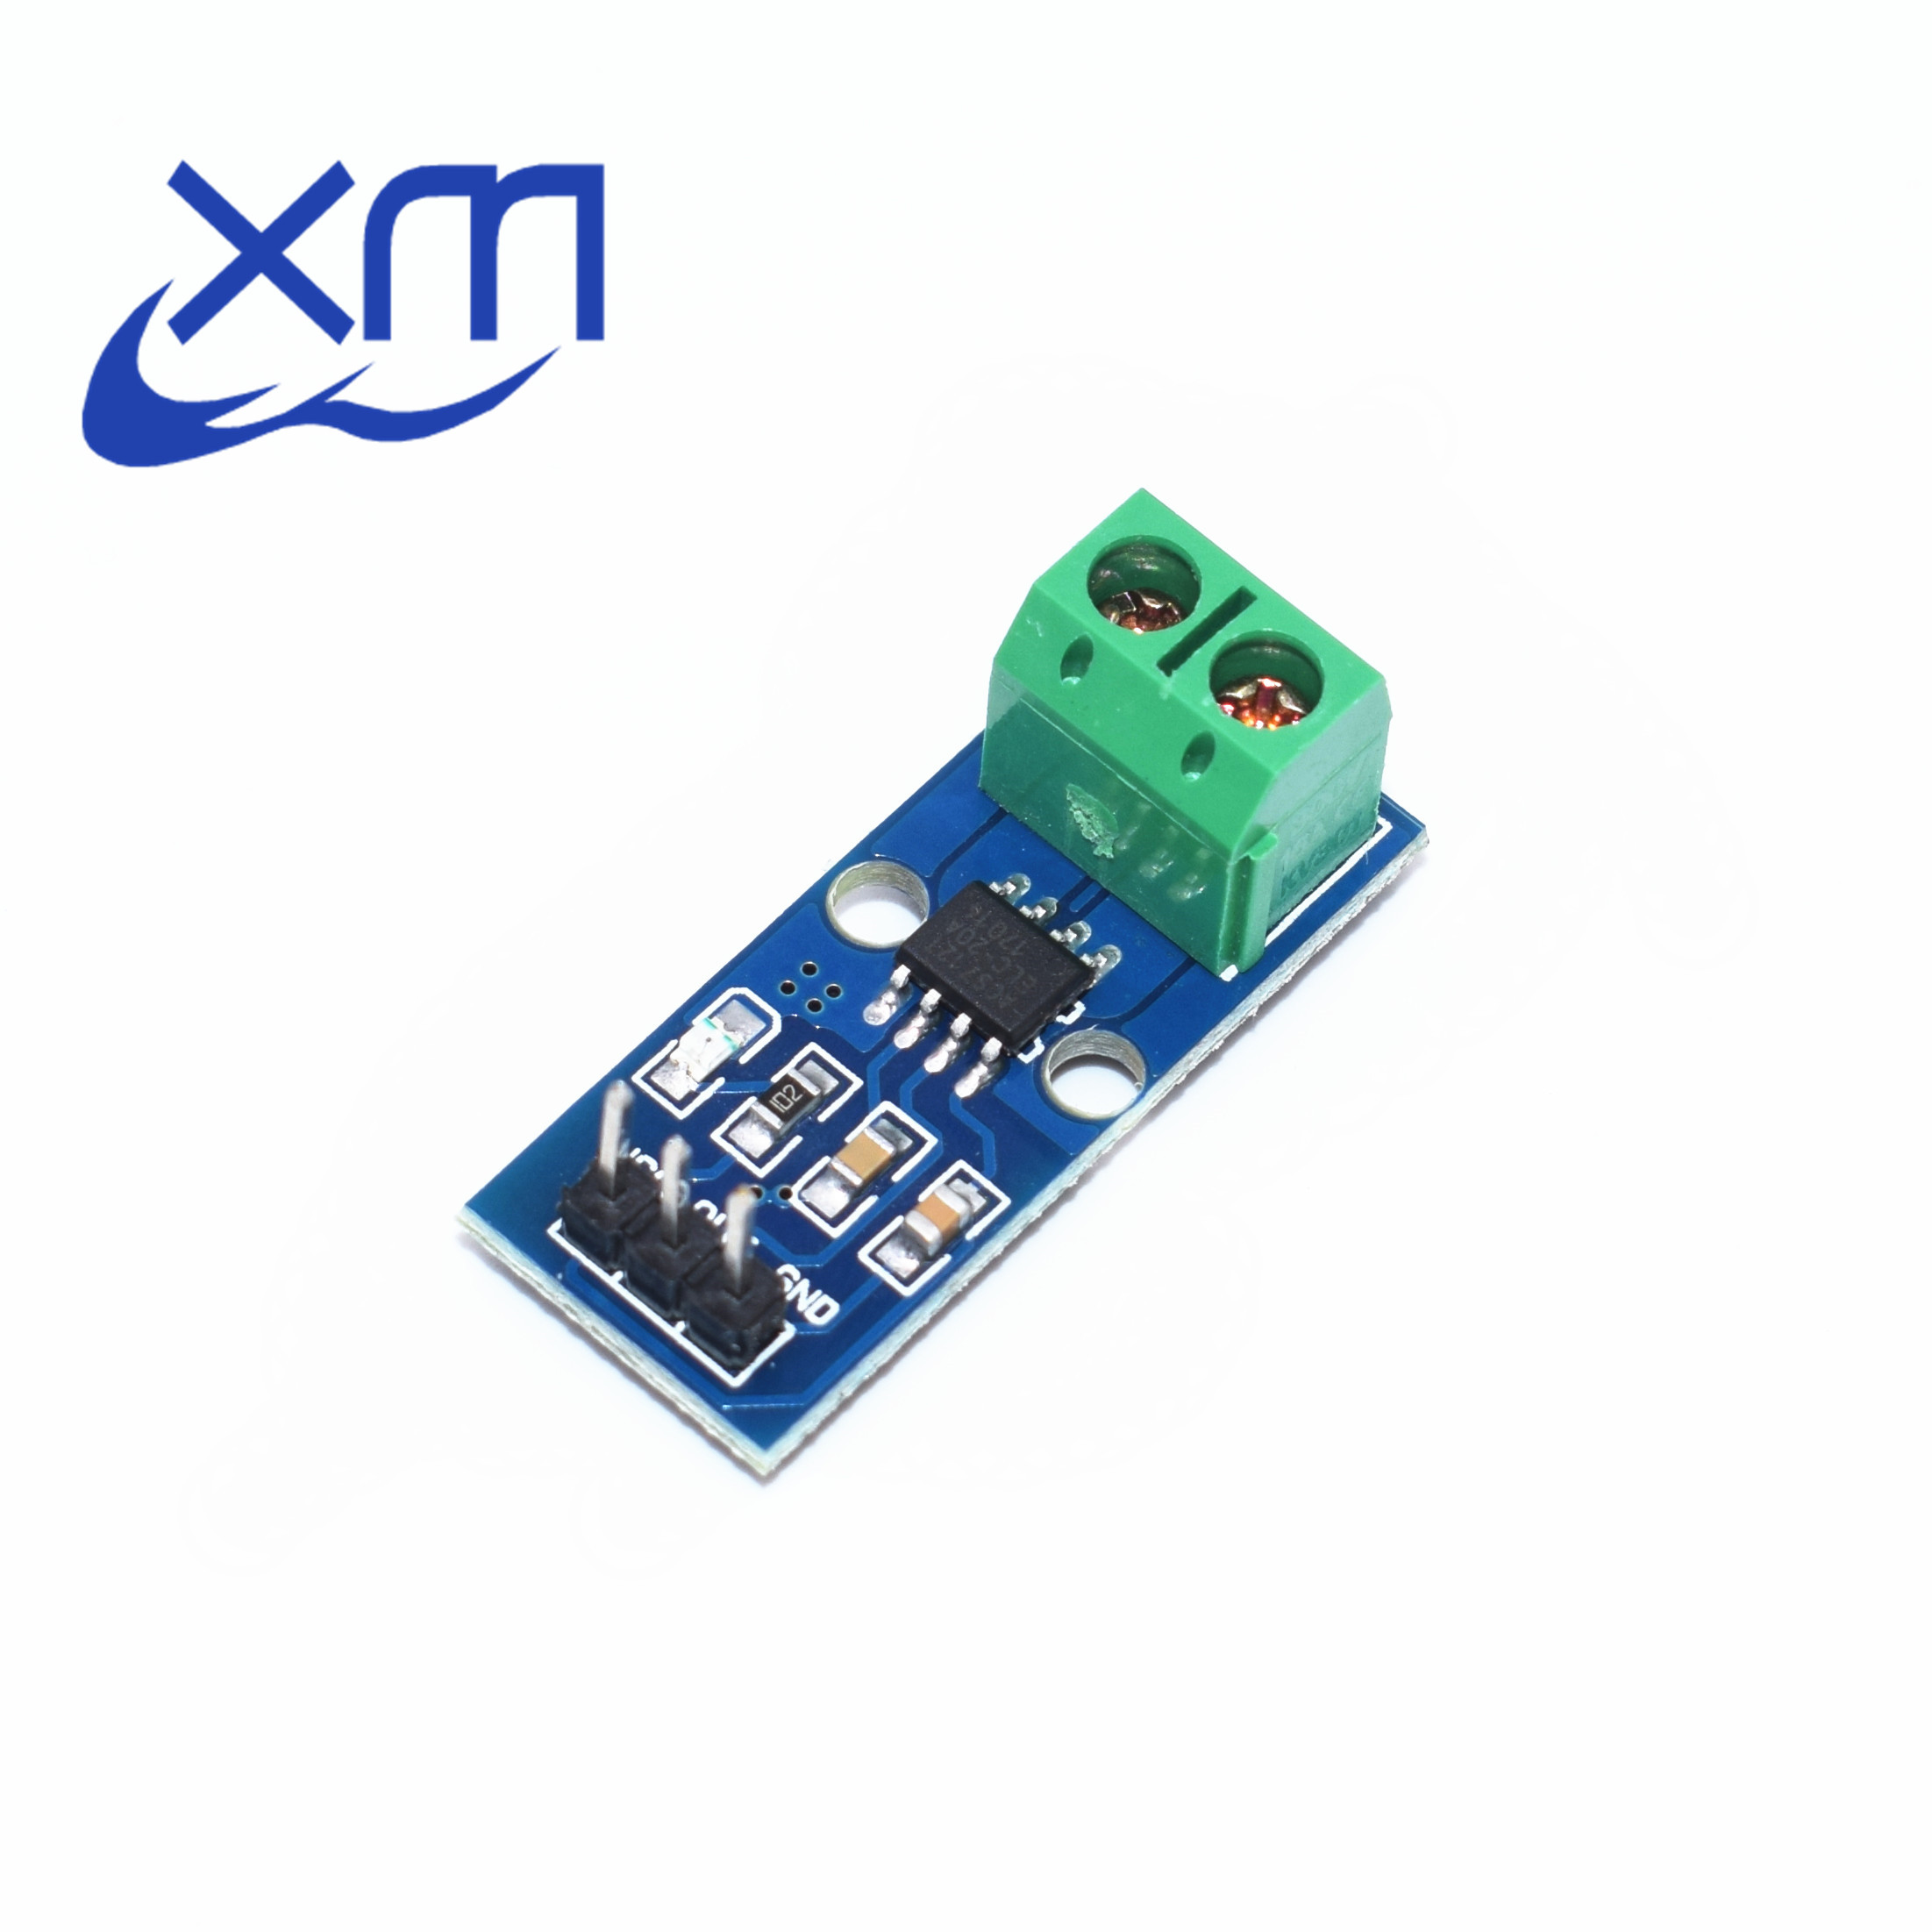 NEW 20A Hall Current Sensor Module <font><b>ACS712</b></font> model 20A In stock high quality <font><b>10pcs</b></font> A13 image